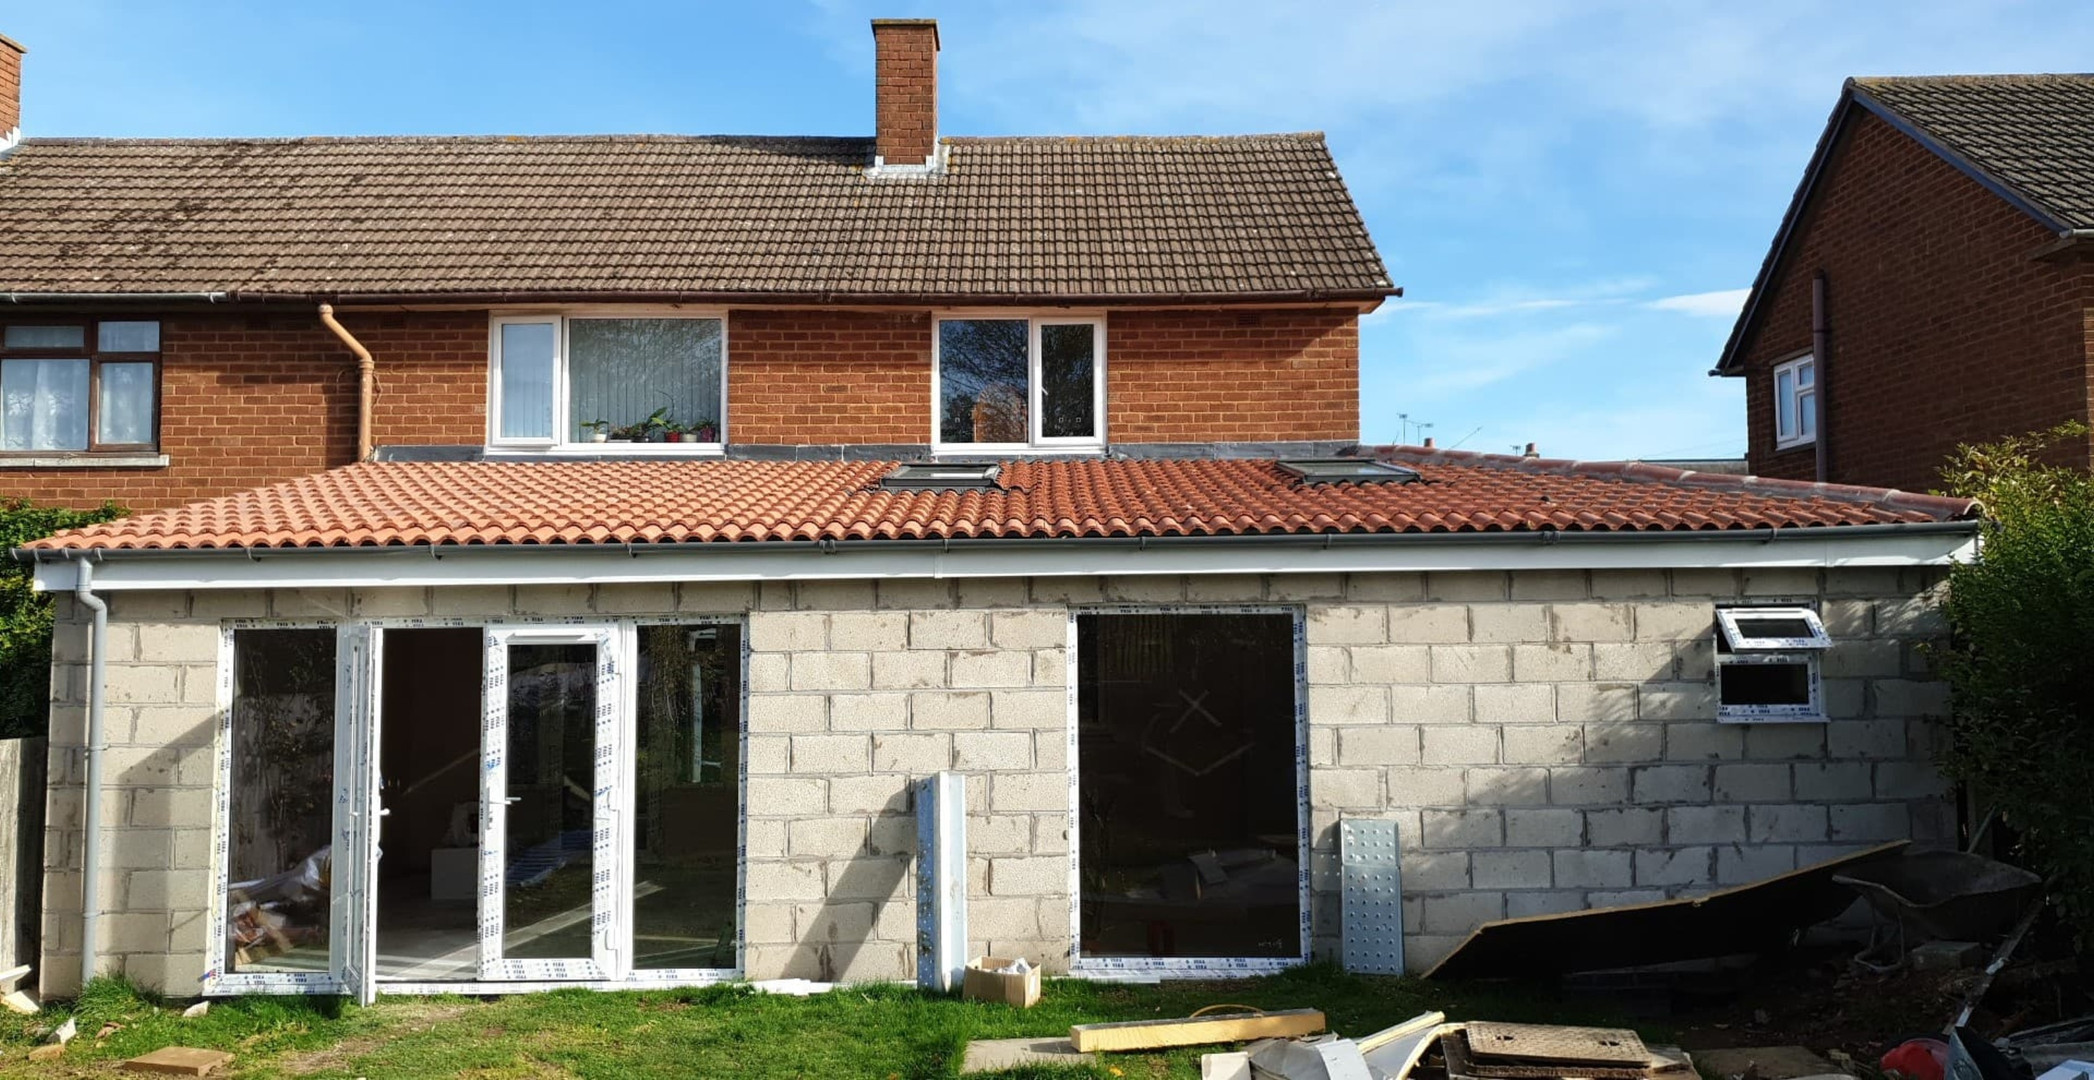 QN Design Architectural Services: Wrap Around Extension - Lawford Road, Rugby